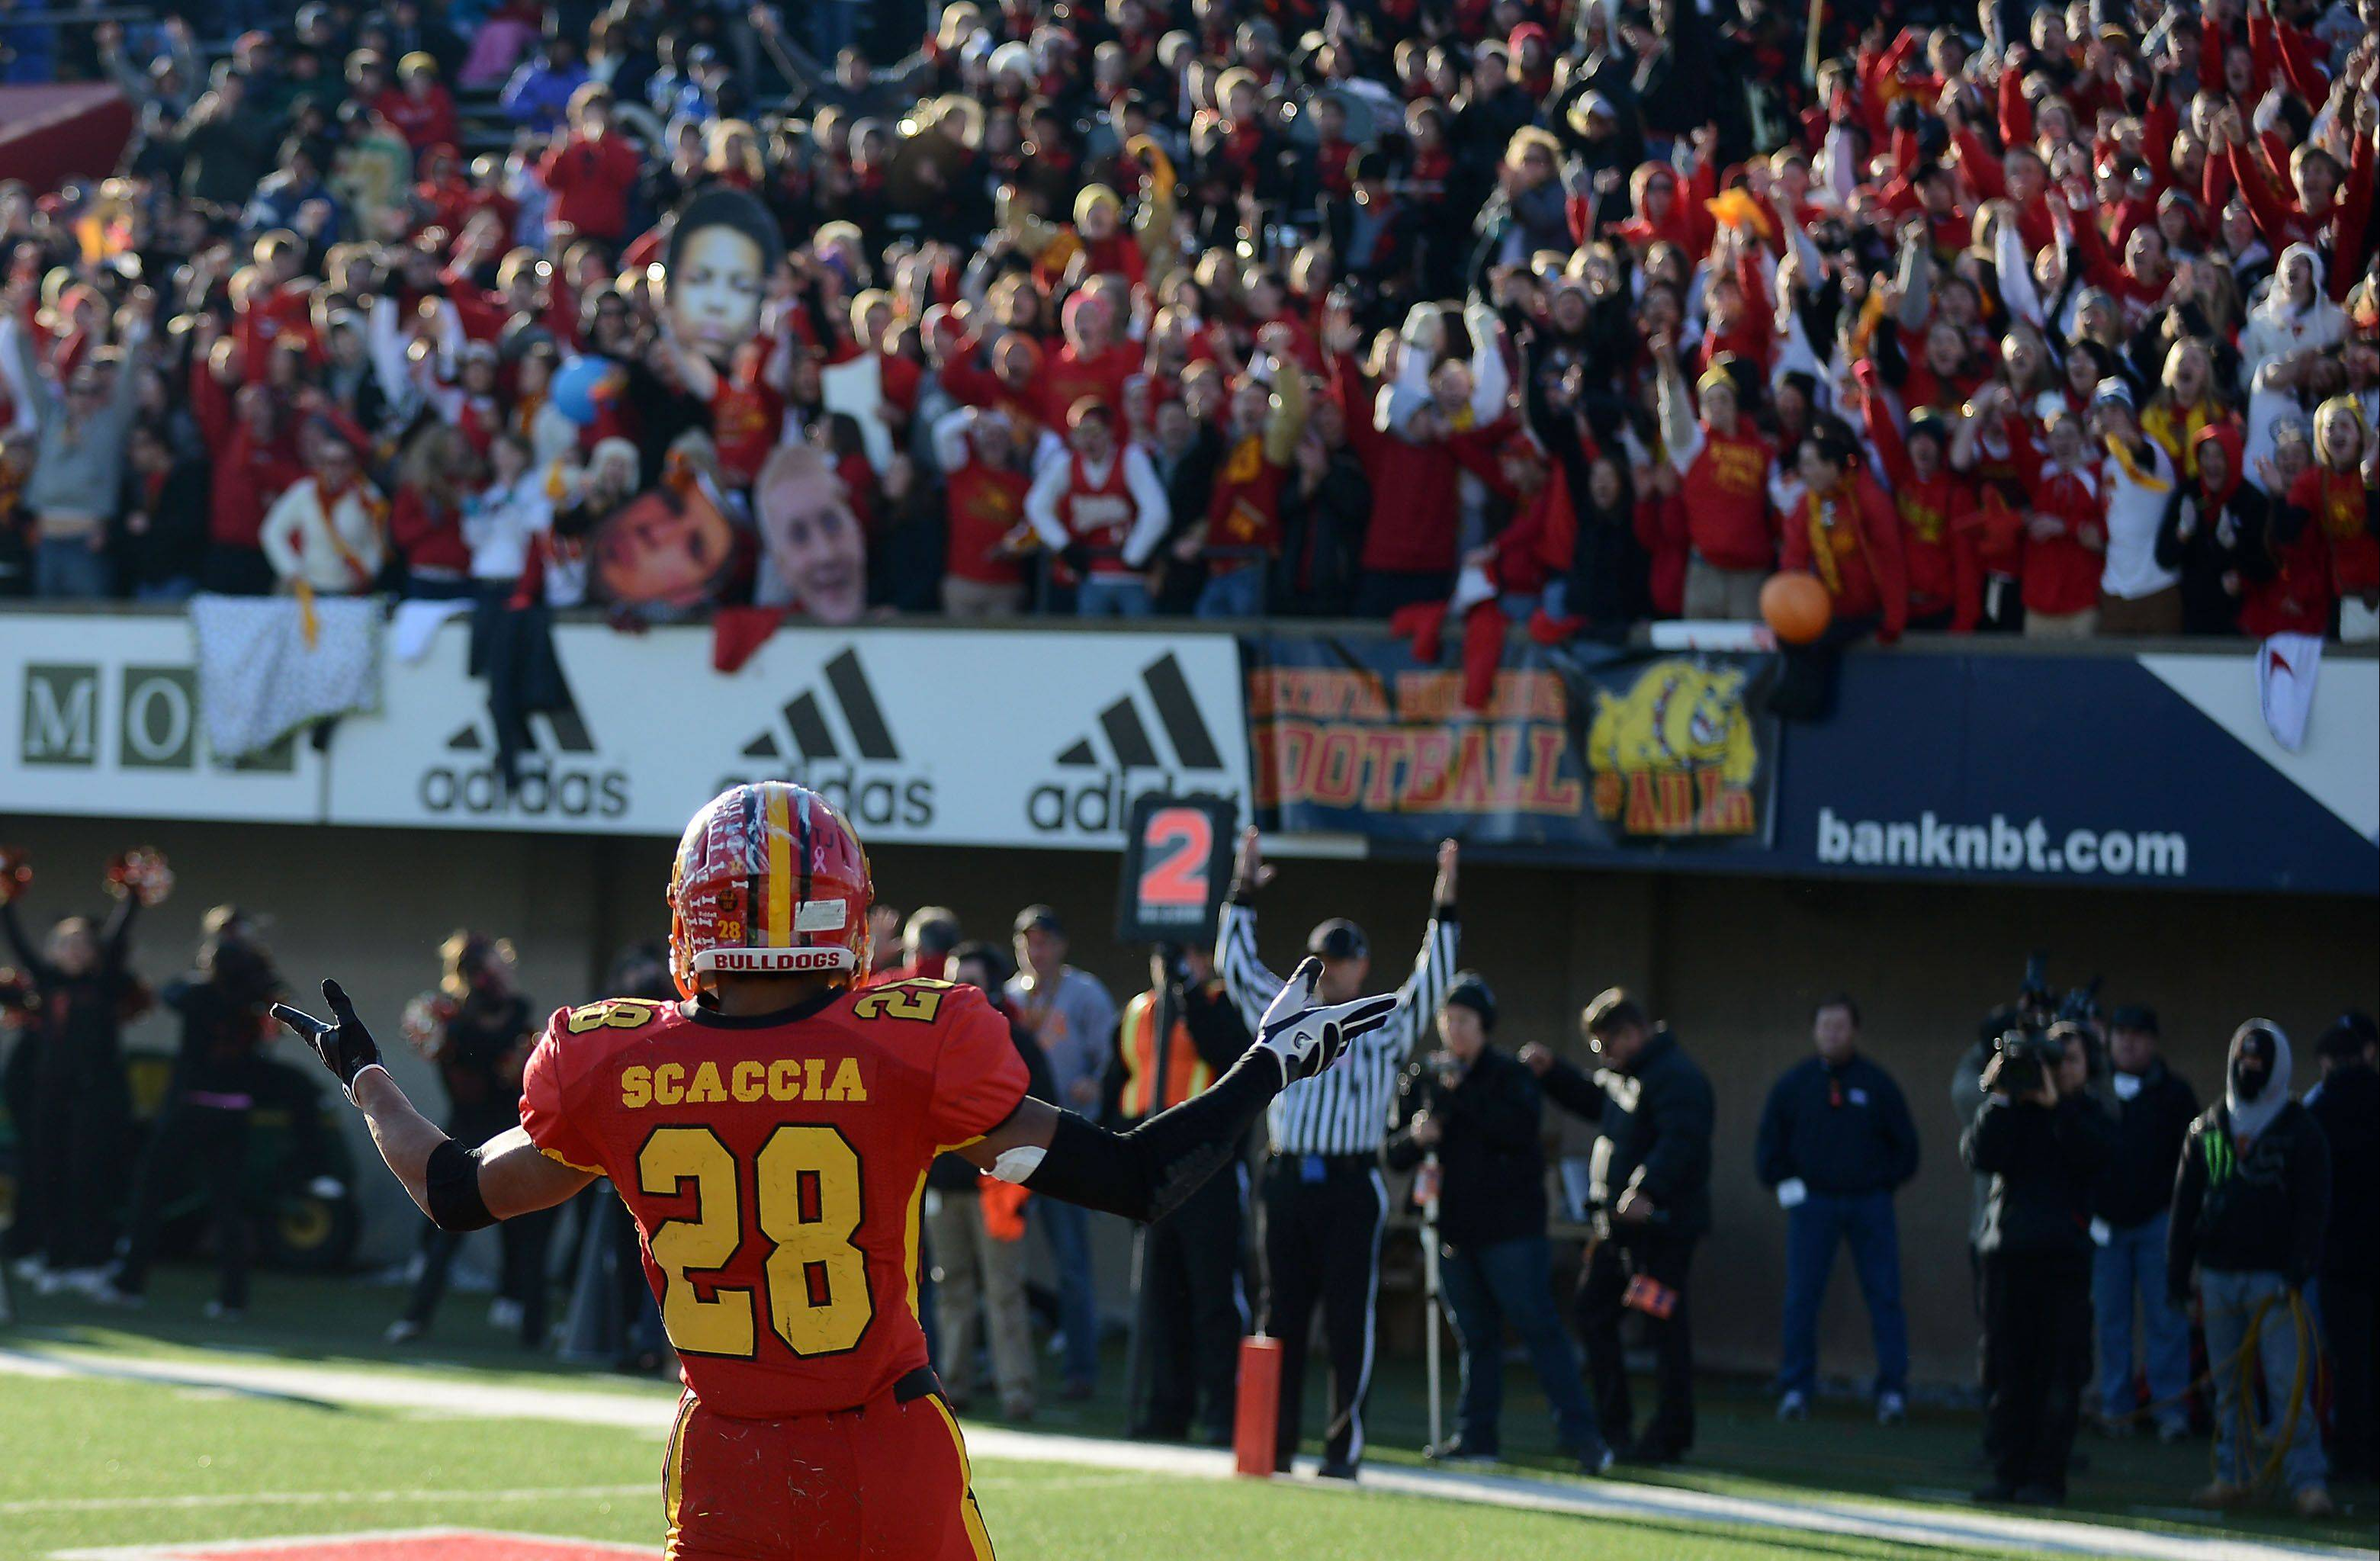 Batavia�s Anthony Scaccia plays to the crowd after scoring a first-quarter touchdown against Richards during last November�s Class 6A state championship game in DeKalb.